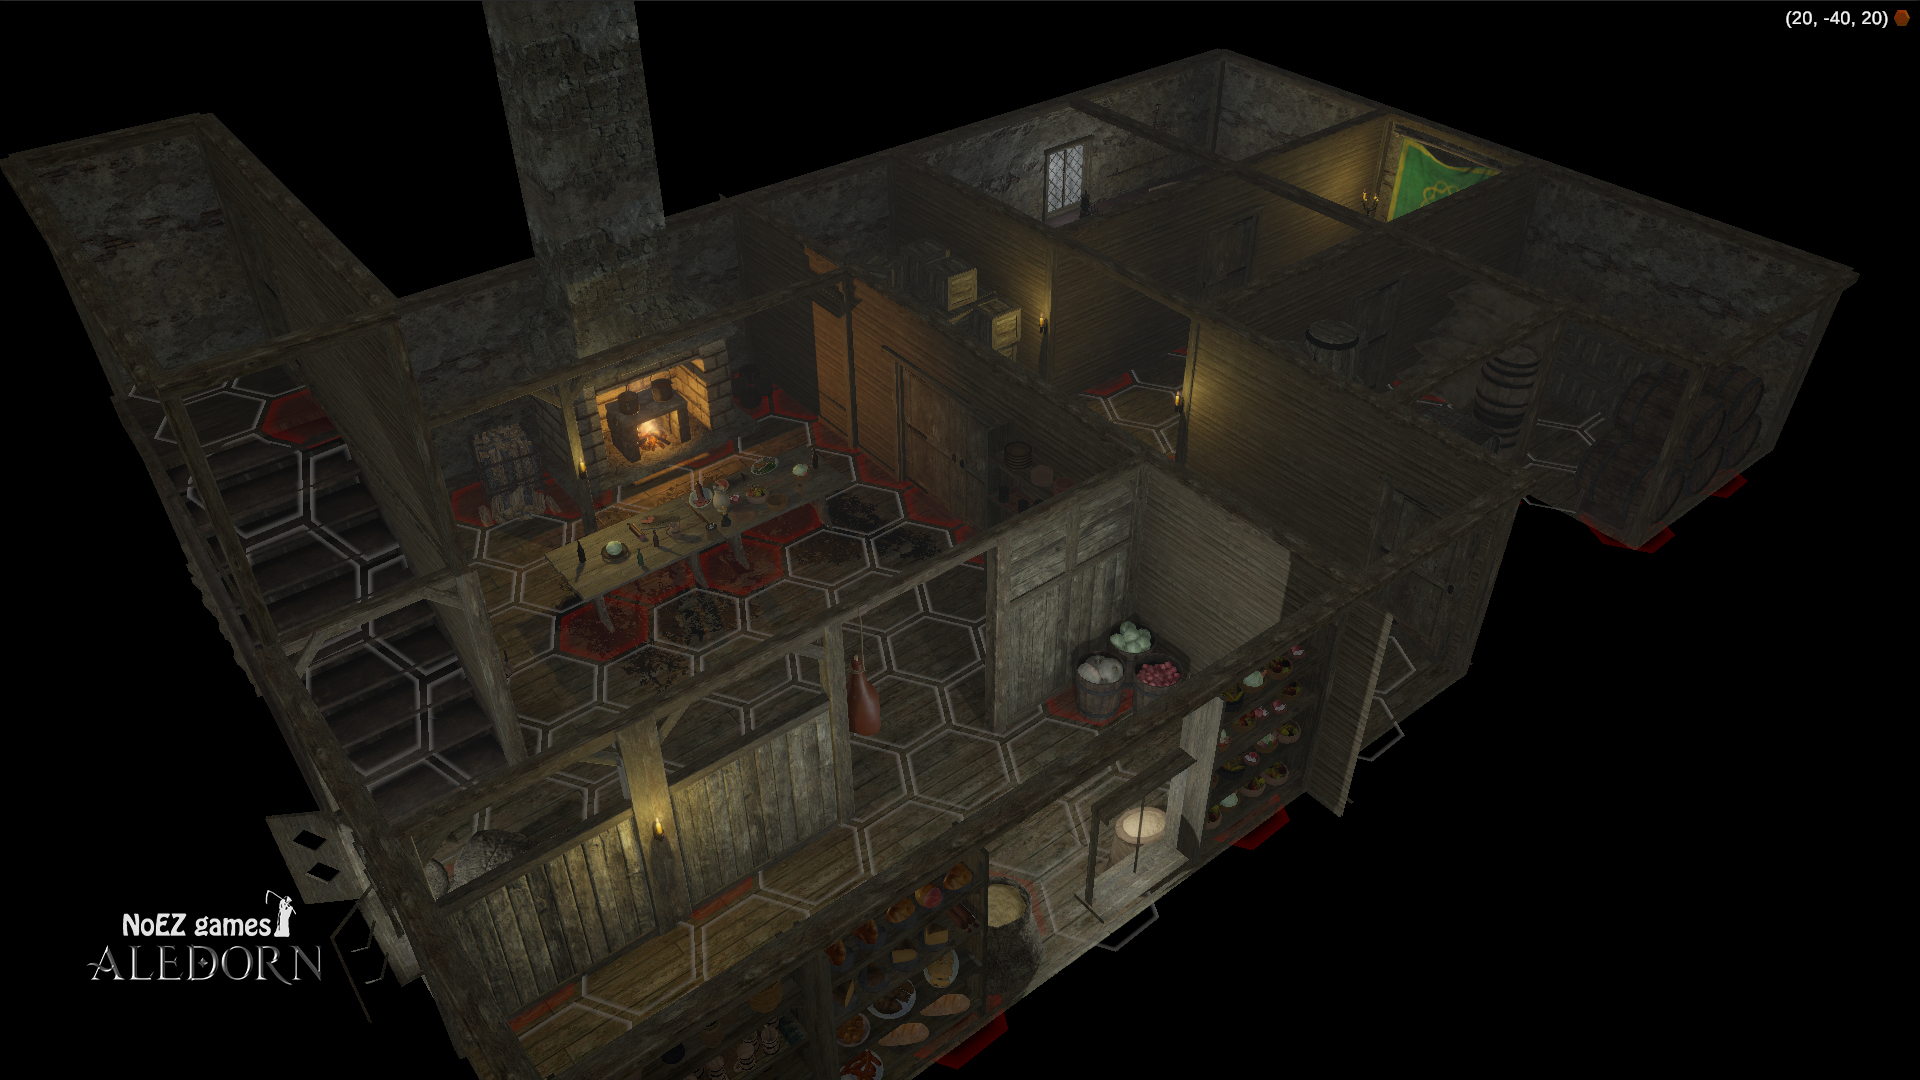 Lim - Town's dungeons